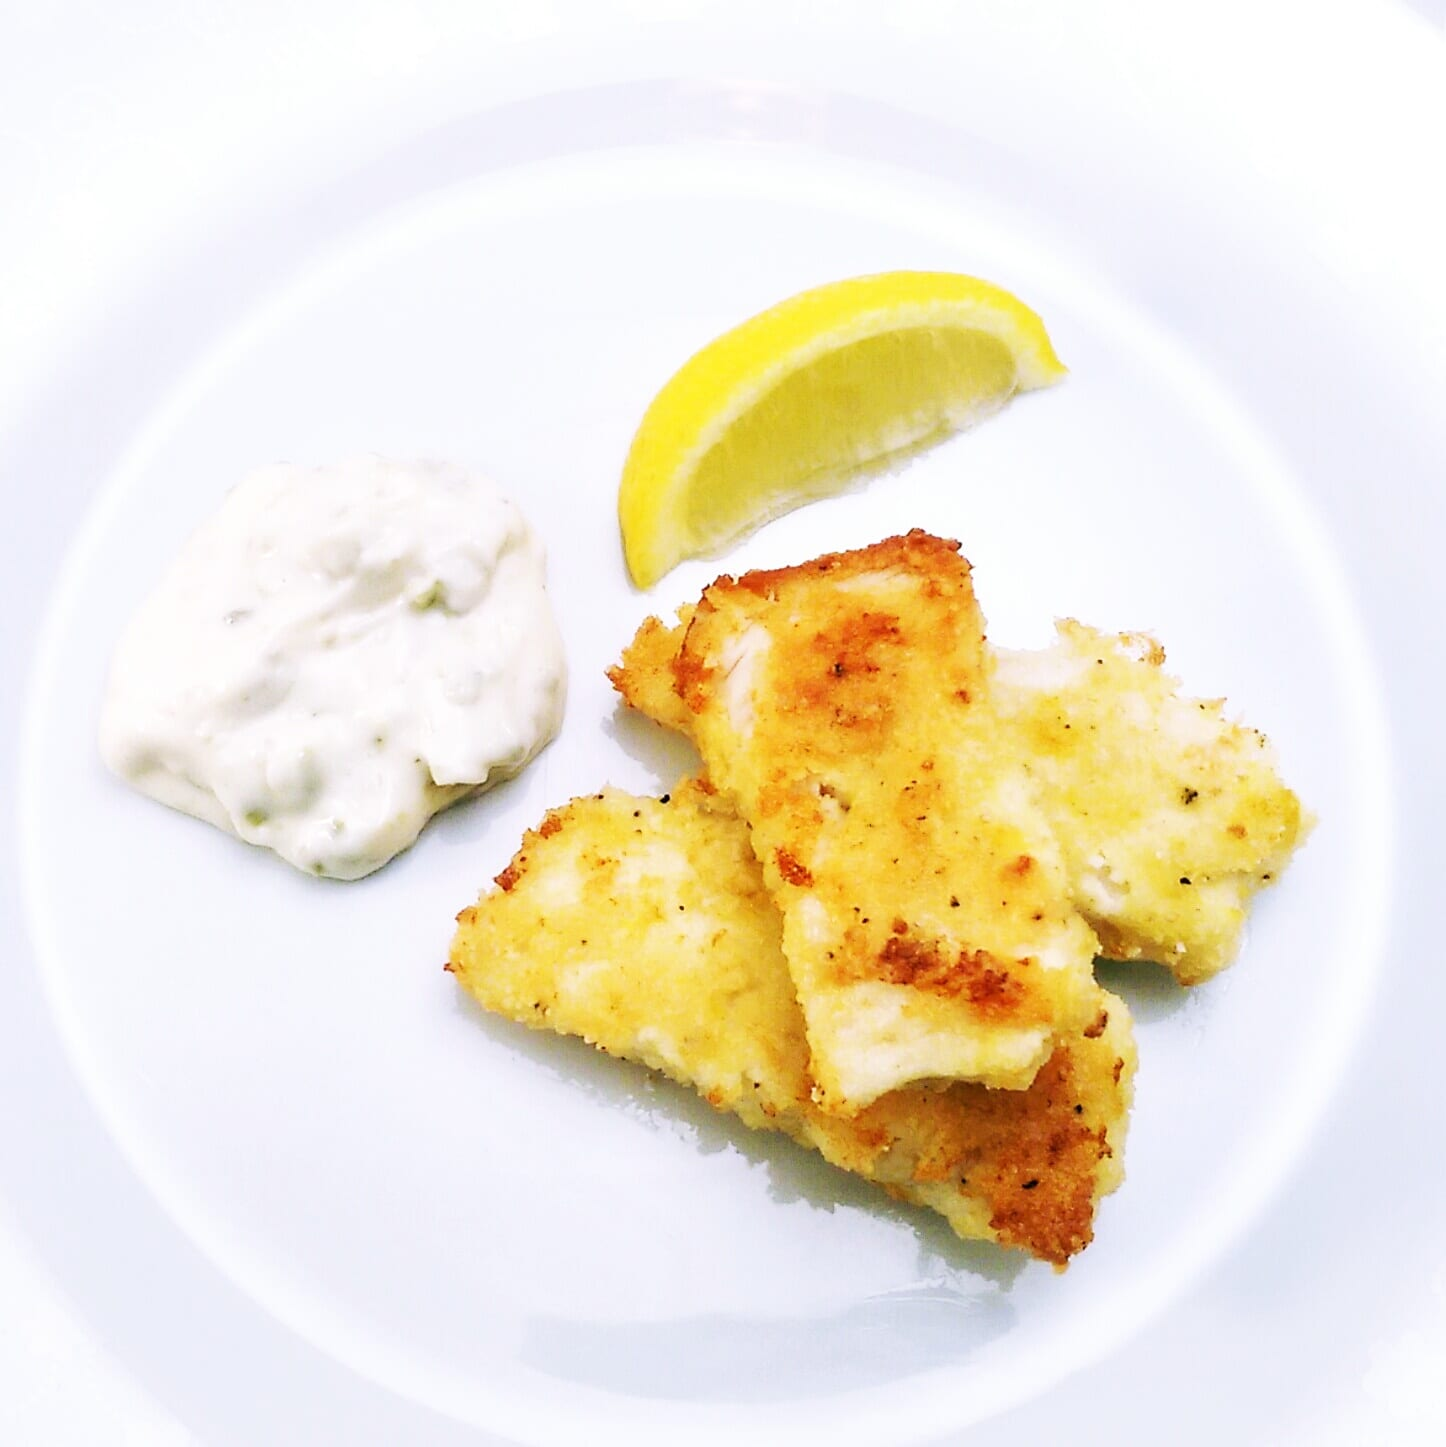 Lemon crumbed fish